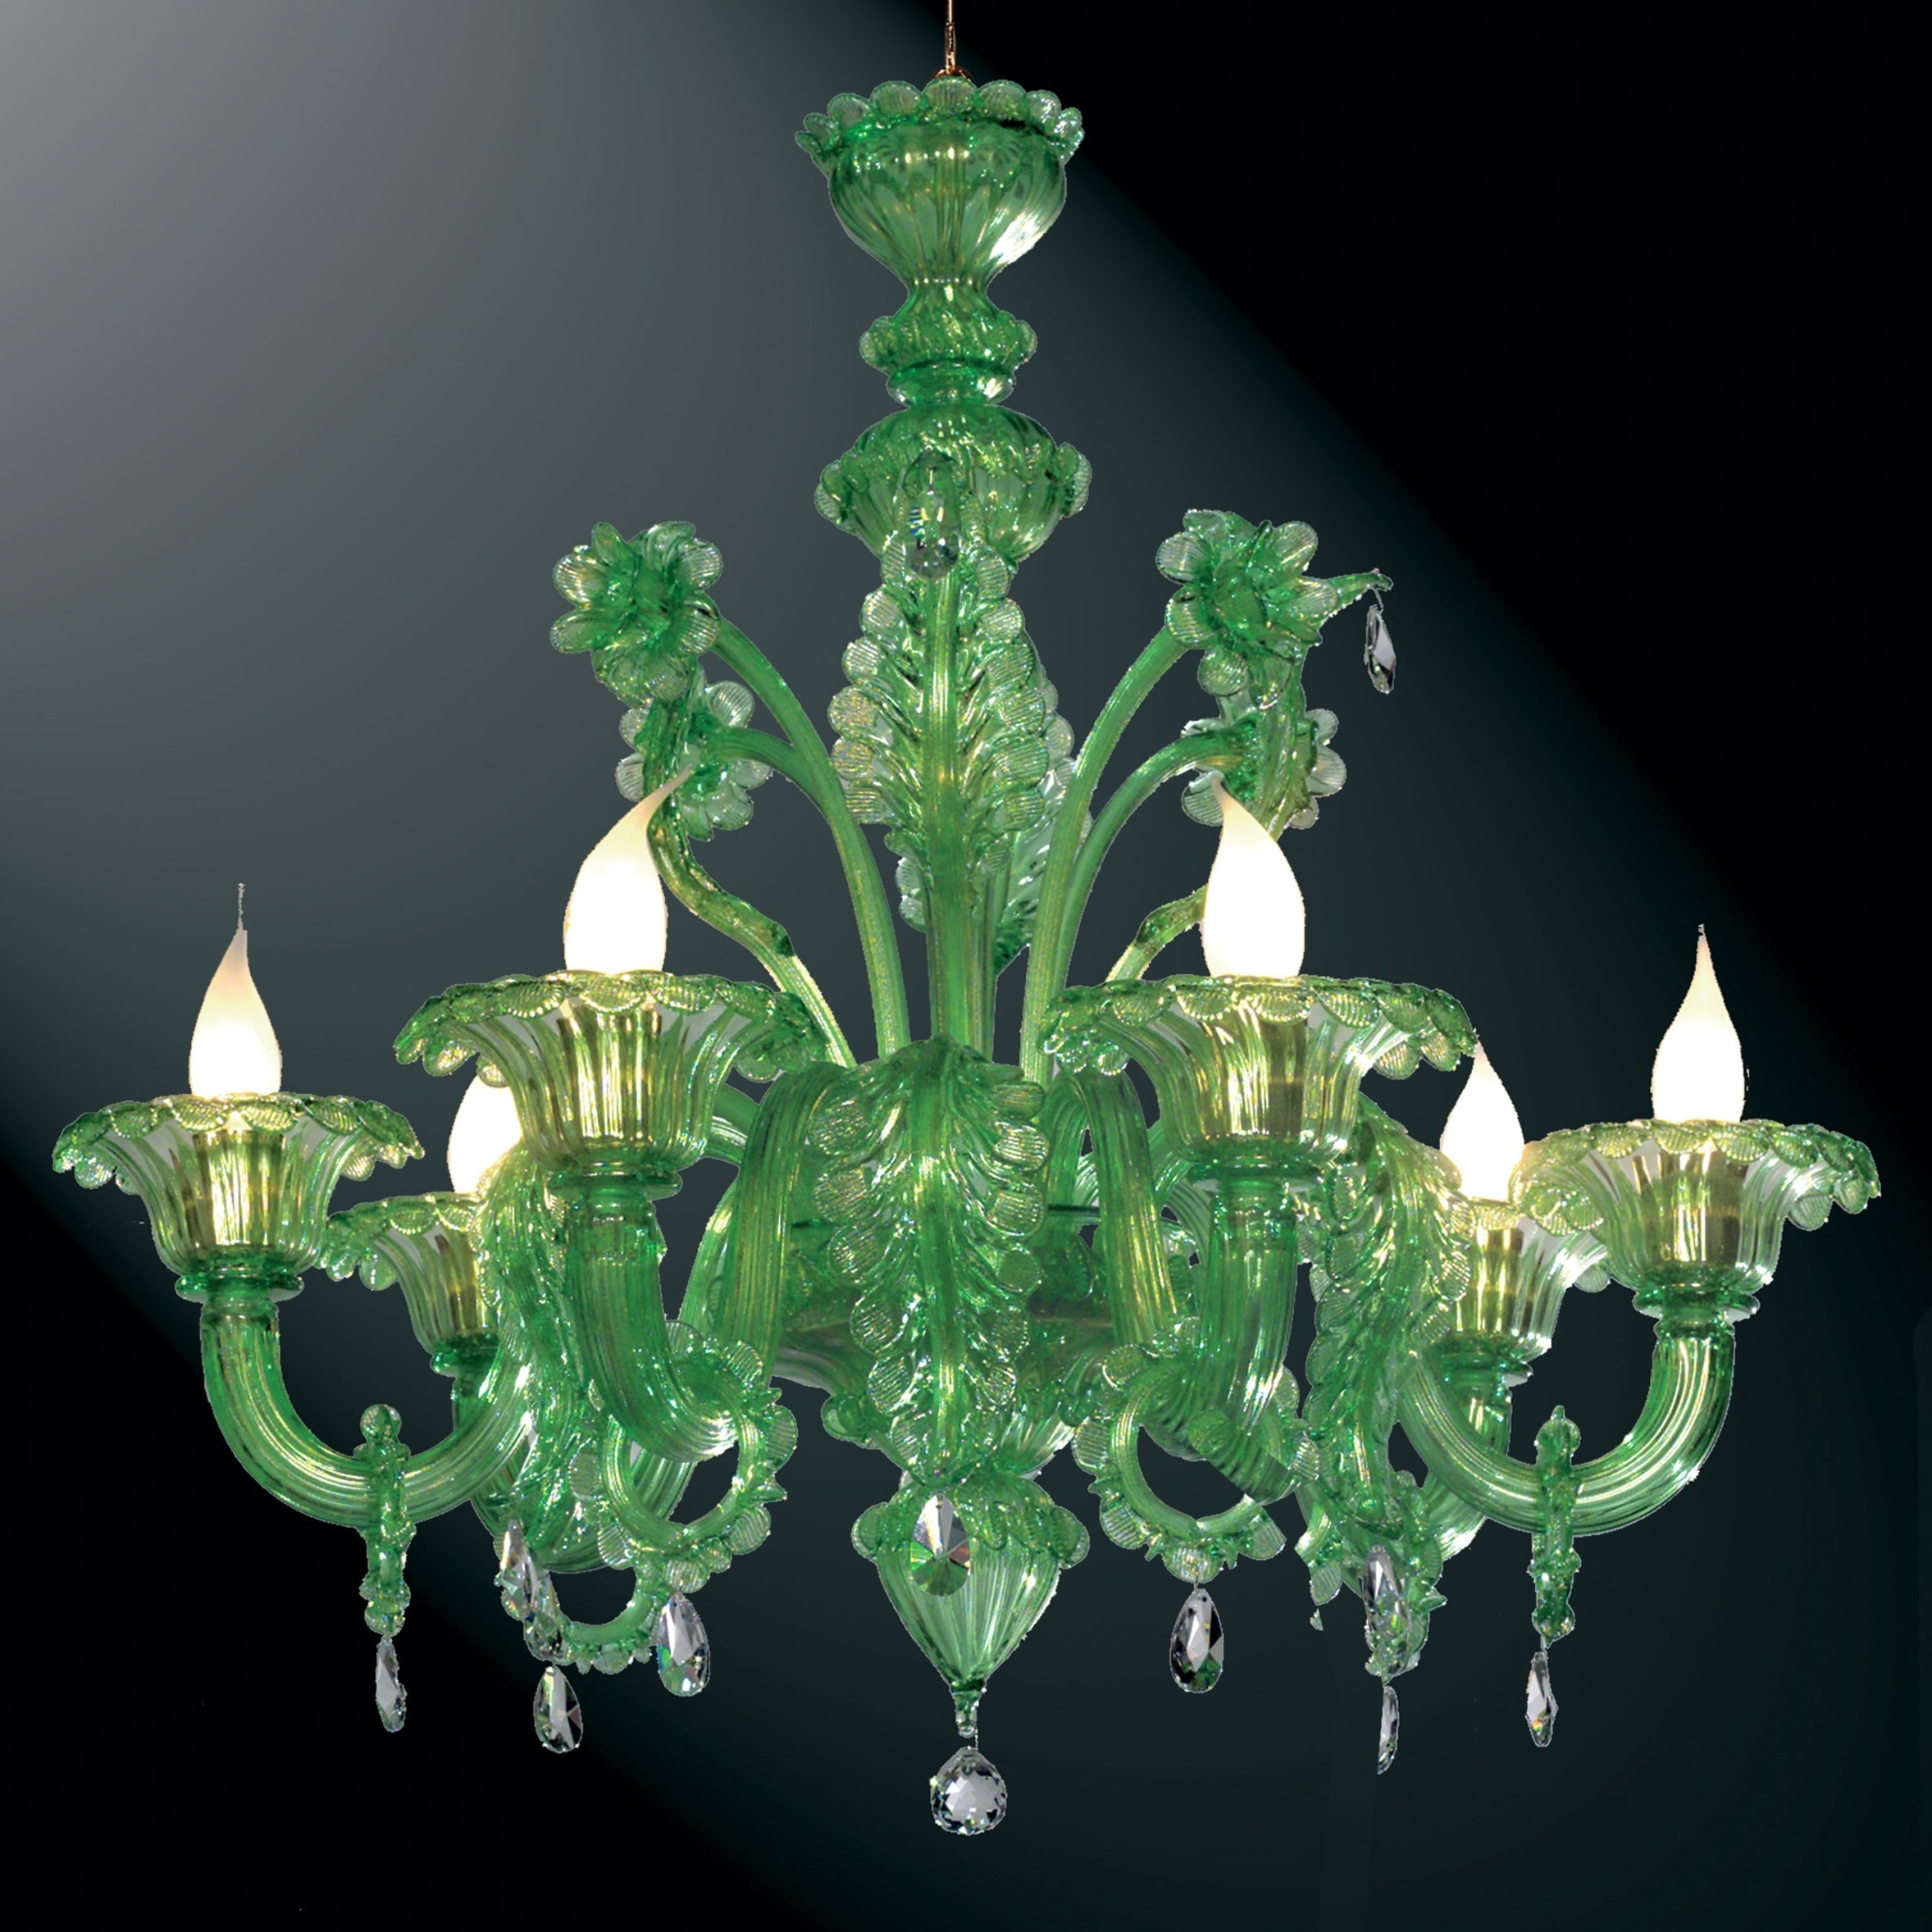 "Giada"" Green Murano Glass Chandelier – Murano Glass Chandeliers Within Current Glass Chandeliers (View 3 of 15)"